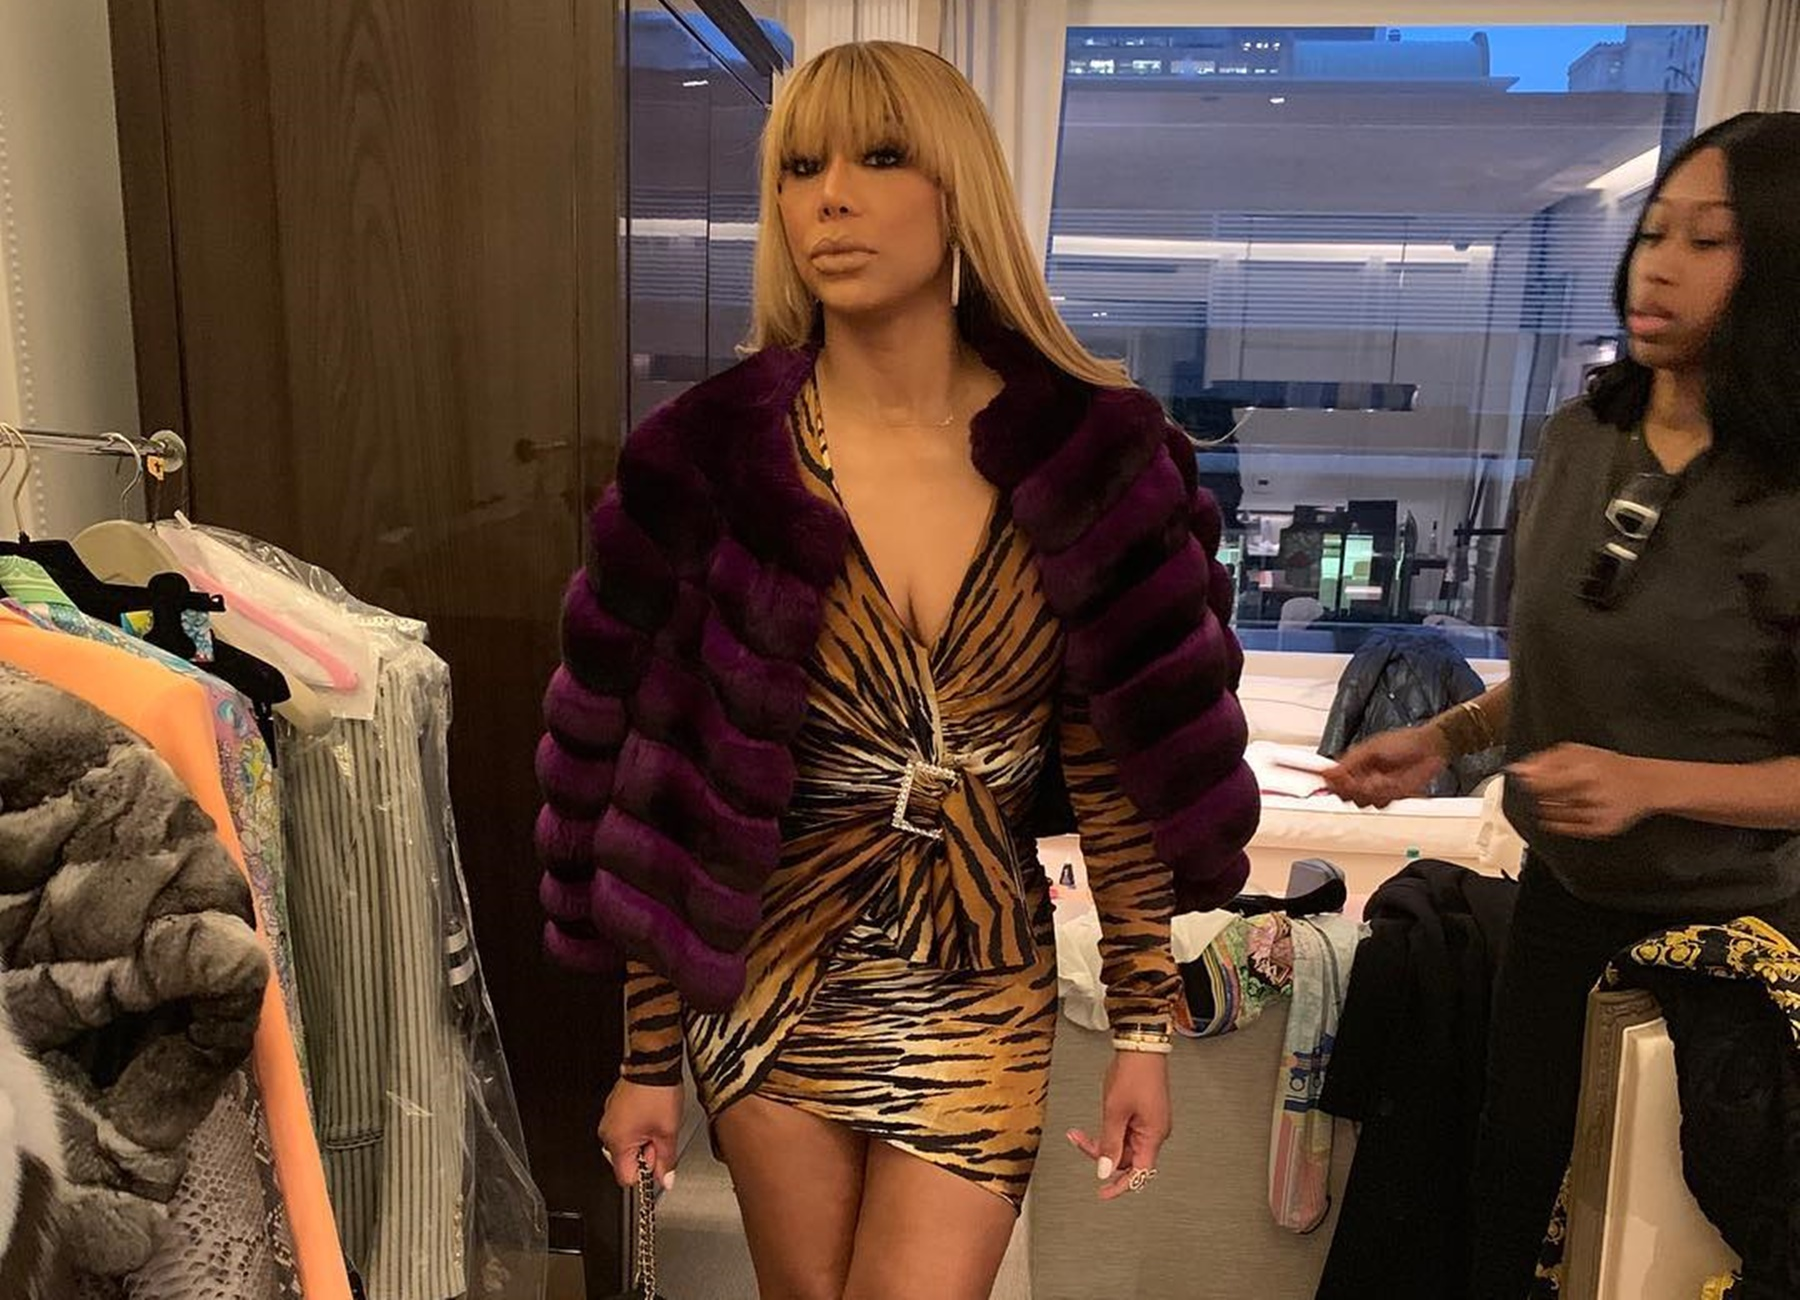 tamar-braxton-is-bashed-for-making-lauren-londons-pain-after-nipsey-hussles-death-about-herself-with-picture